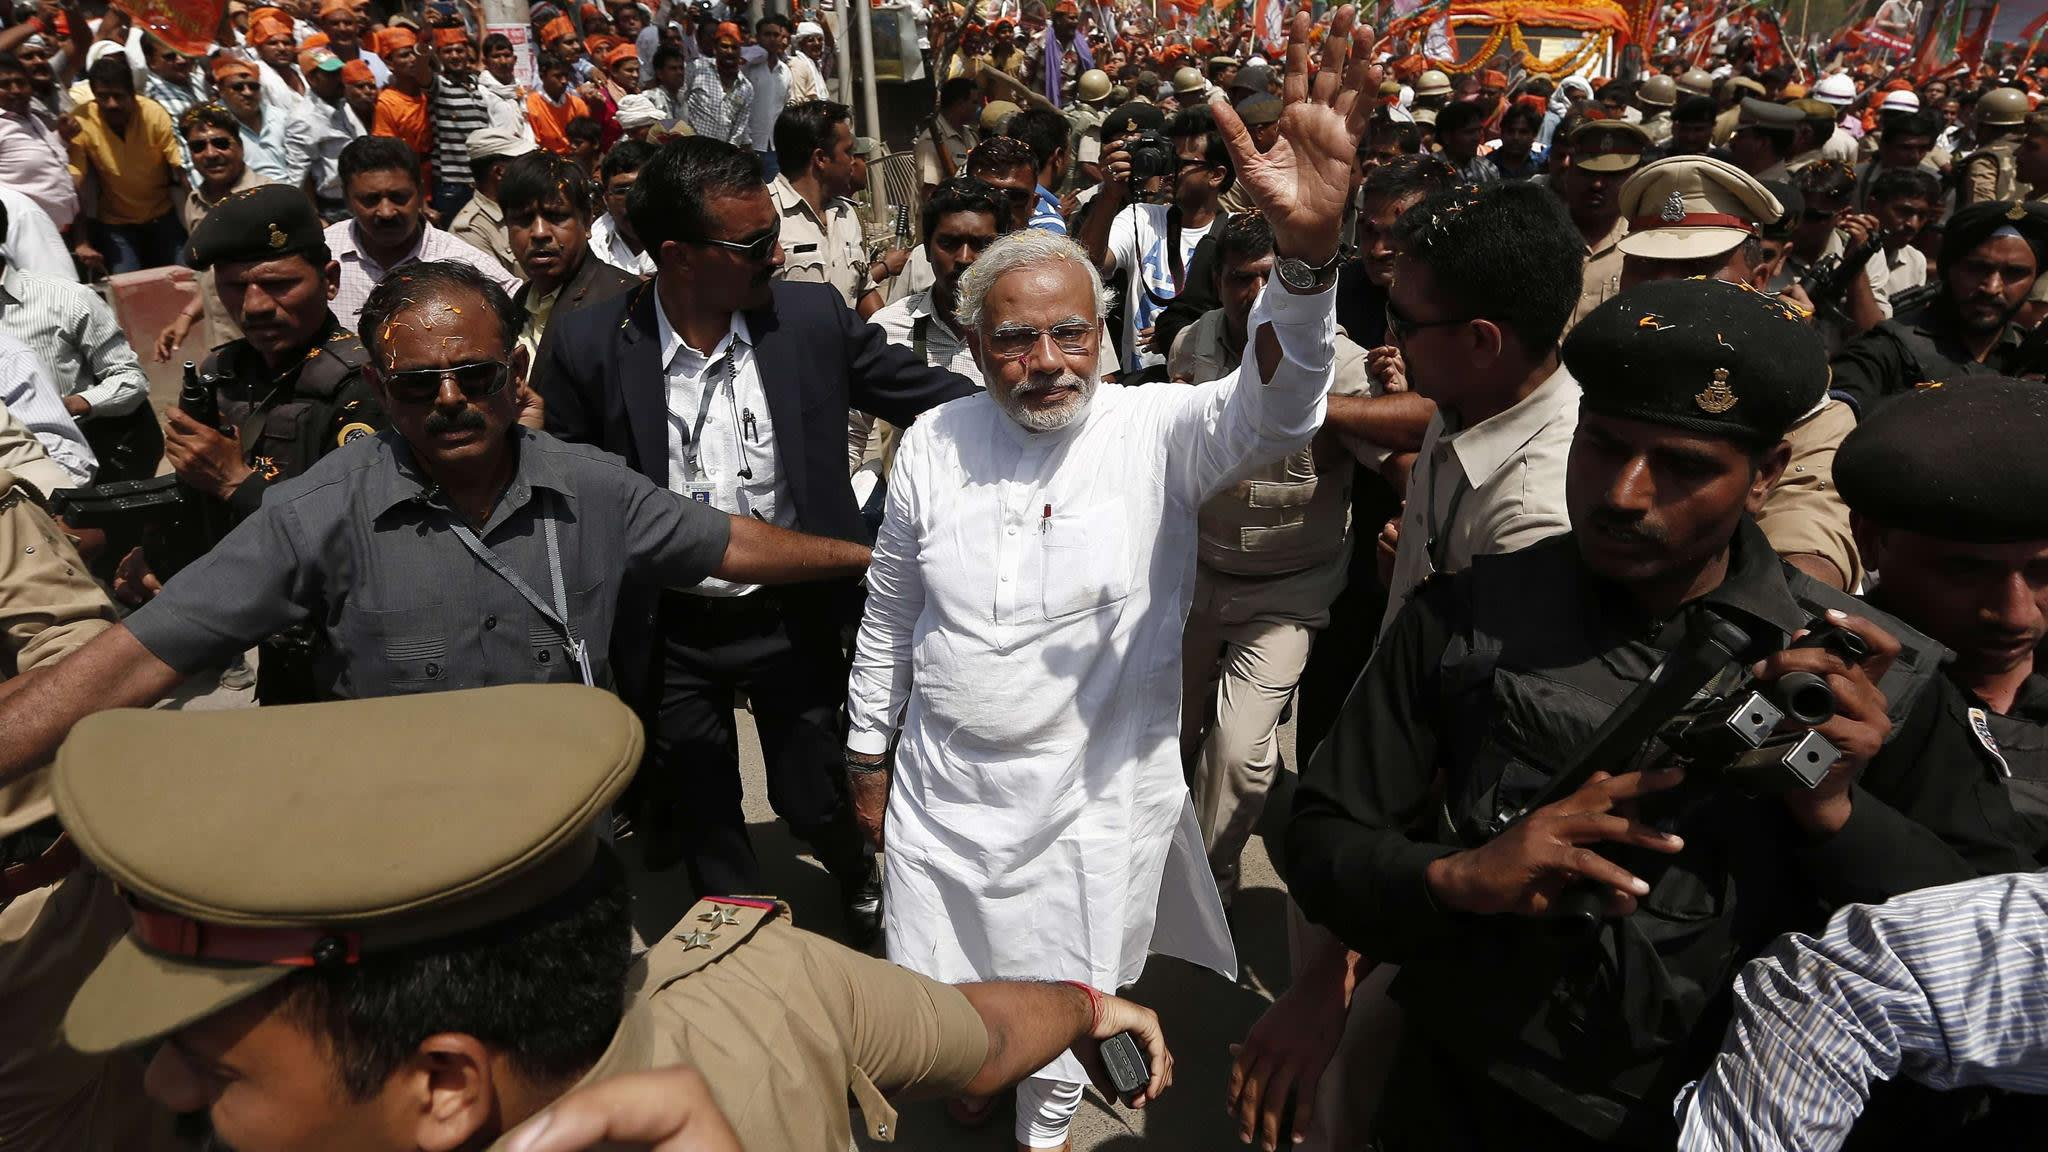 Modi shows political muscle in Indian holy city | Financial Times